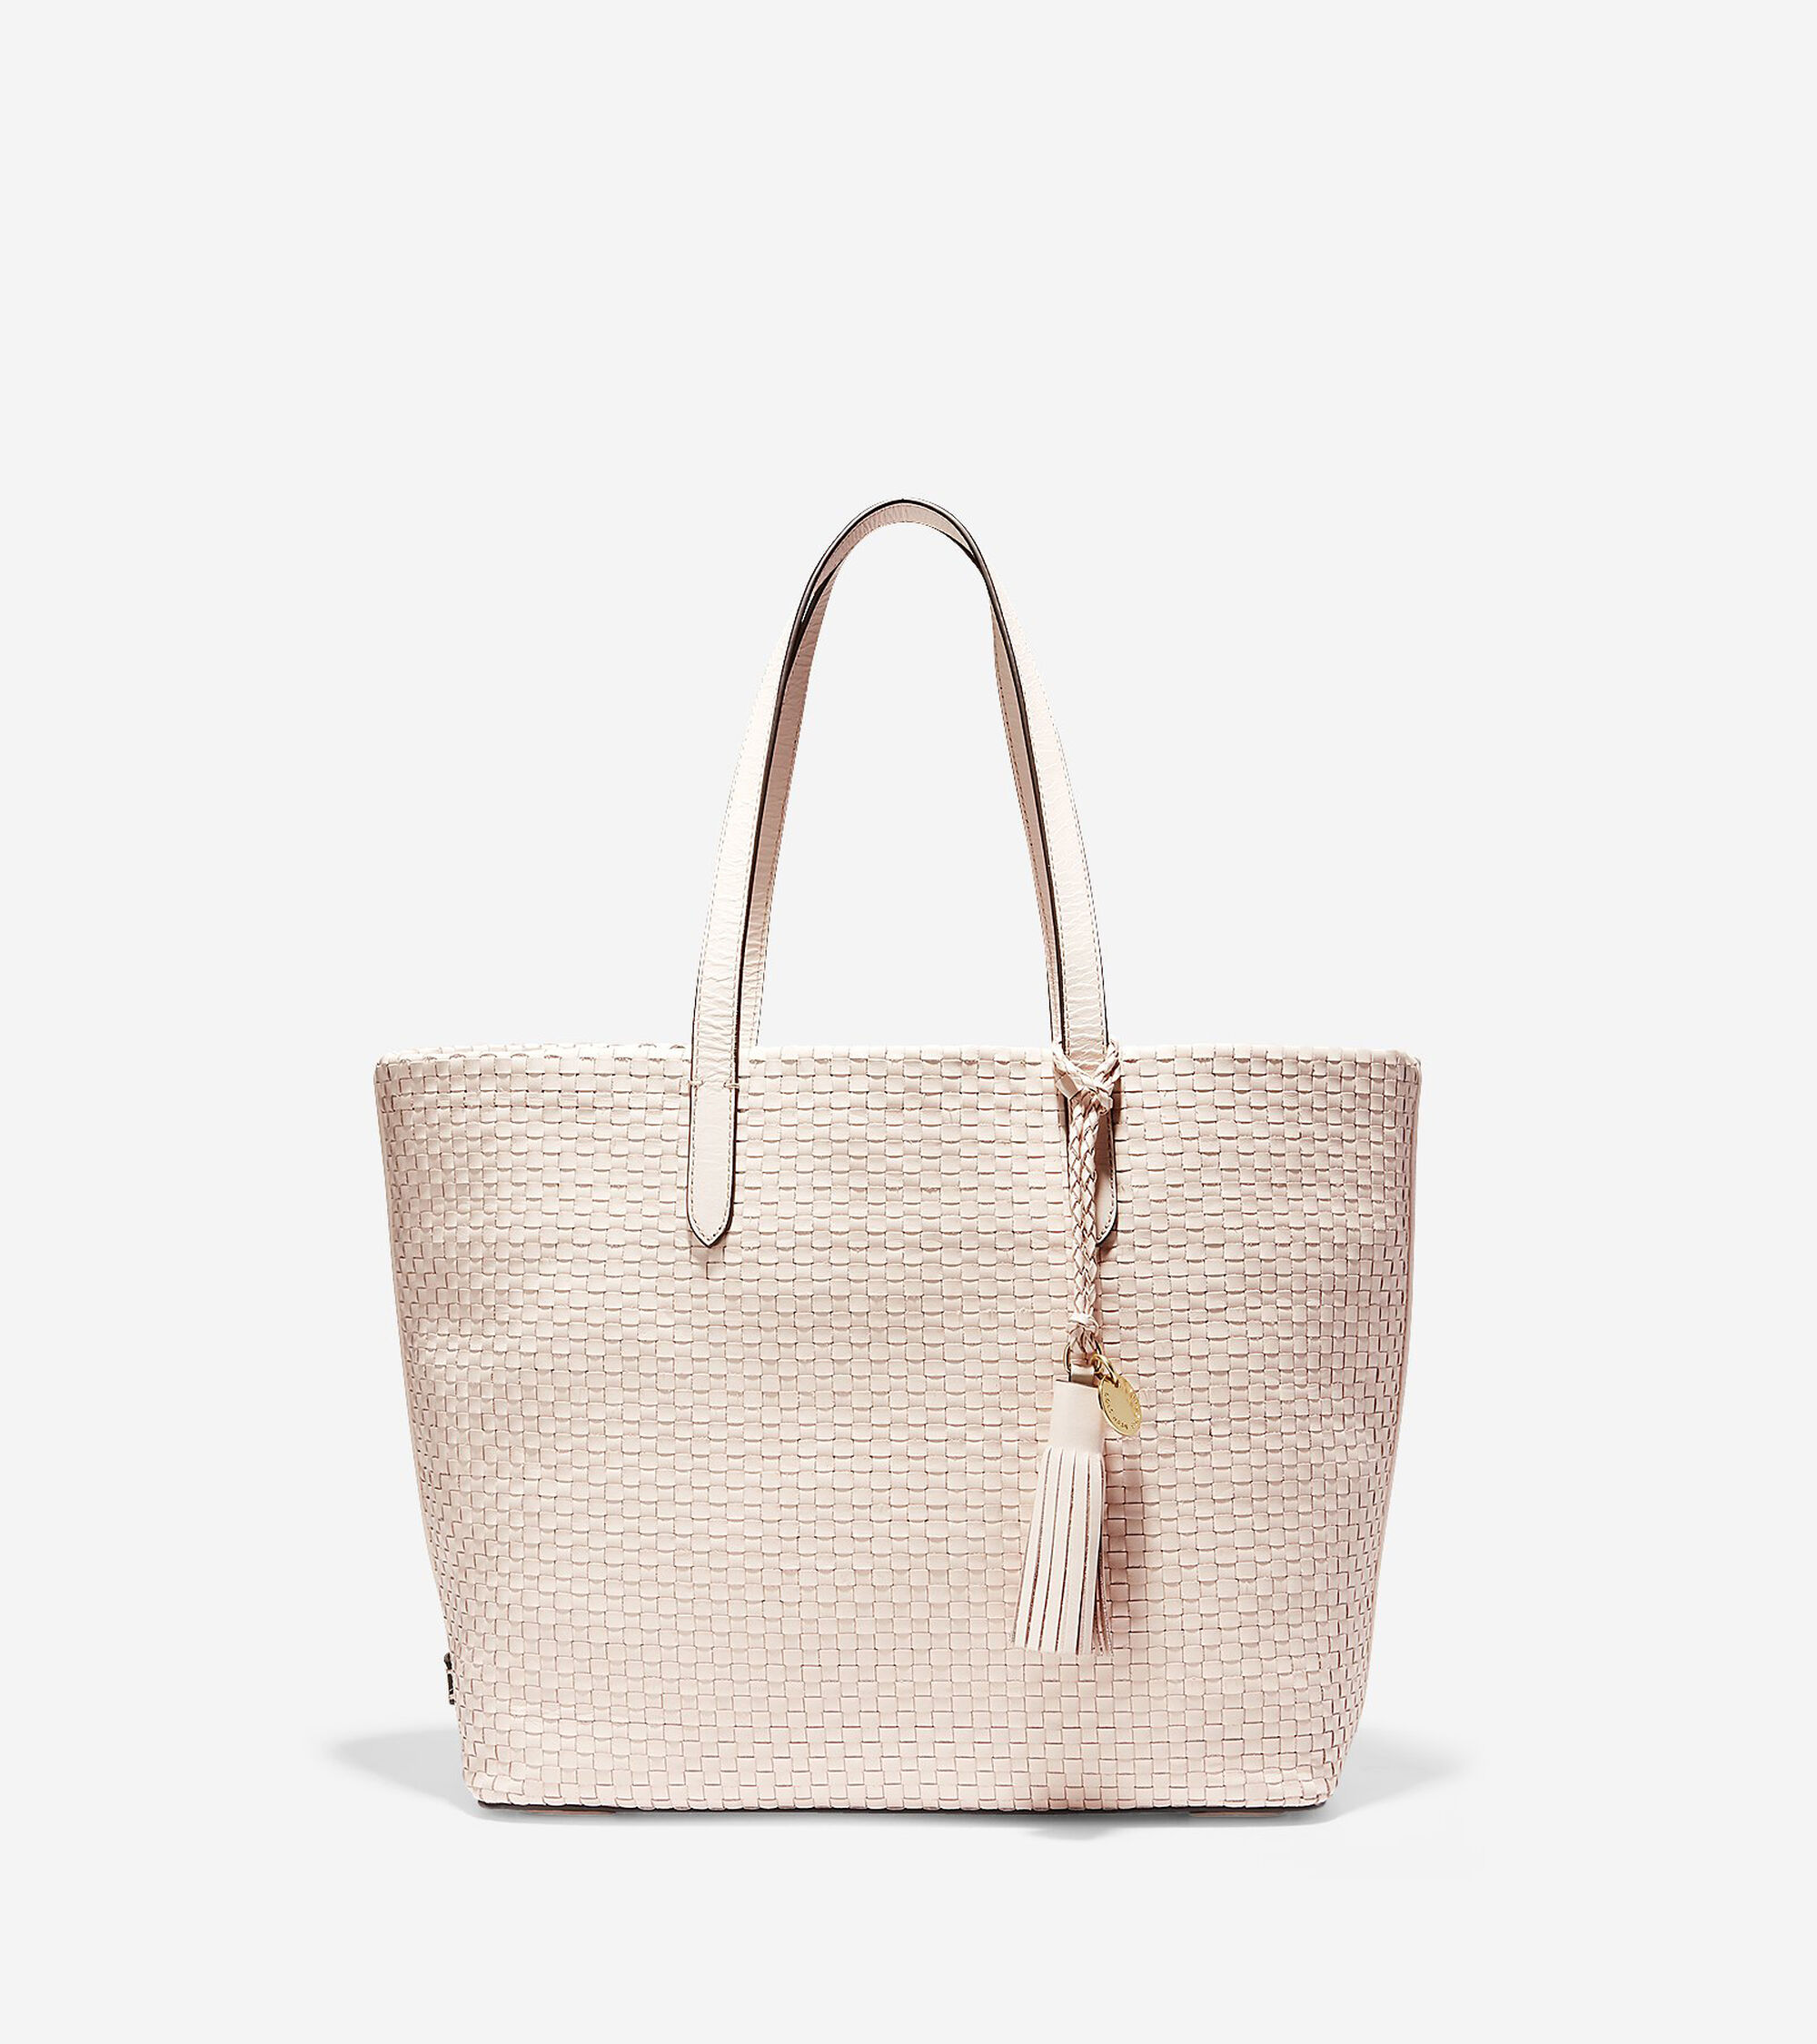 Cole Haan Women's Payson Woven Tote